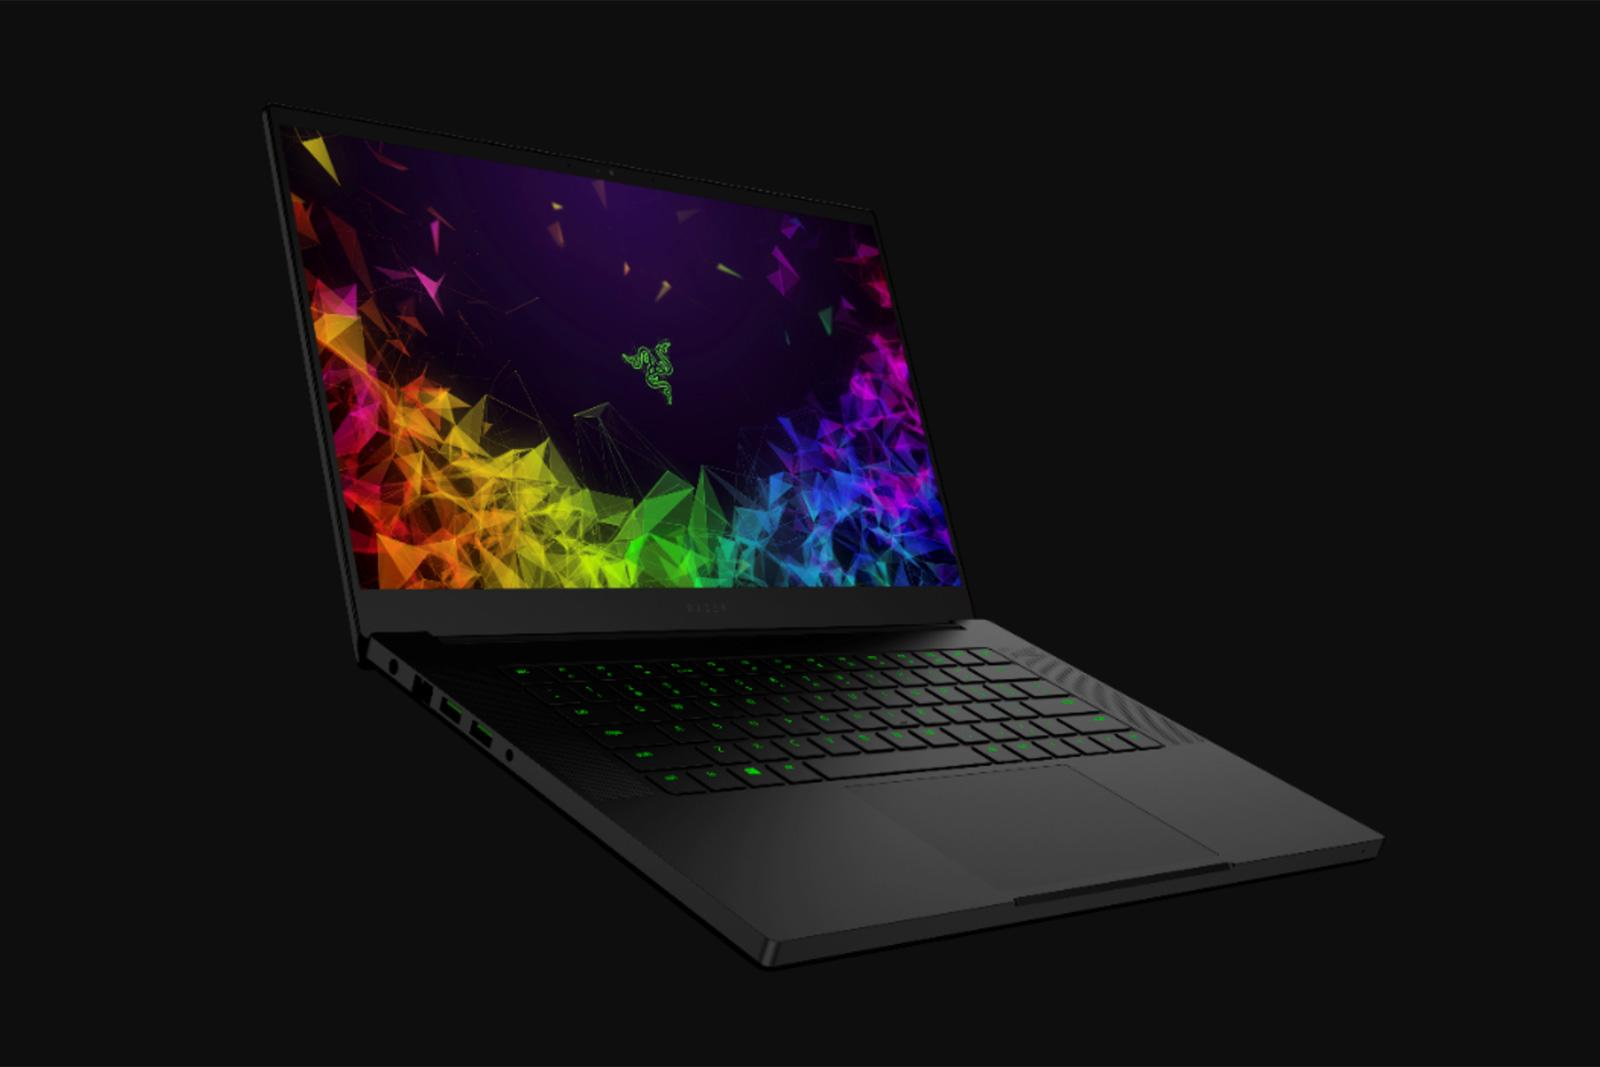 Razer's Blade 15 Base drops to $1,100 at Amazon for today only - Engadget